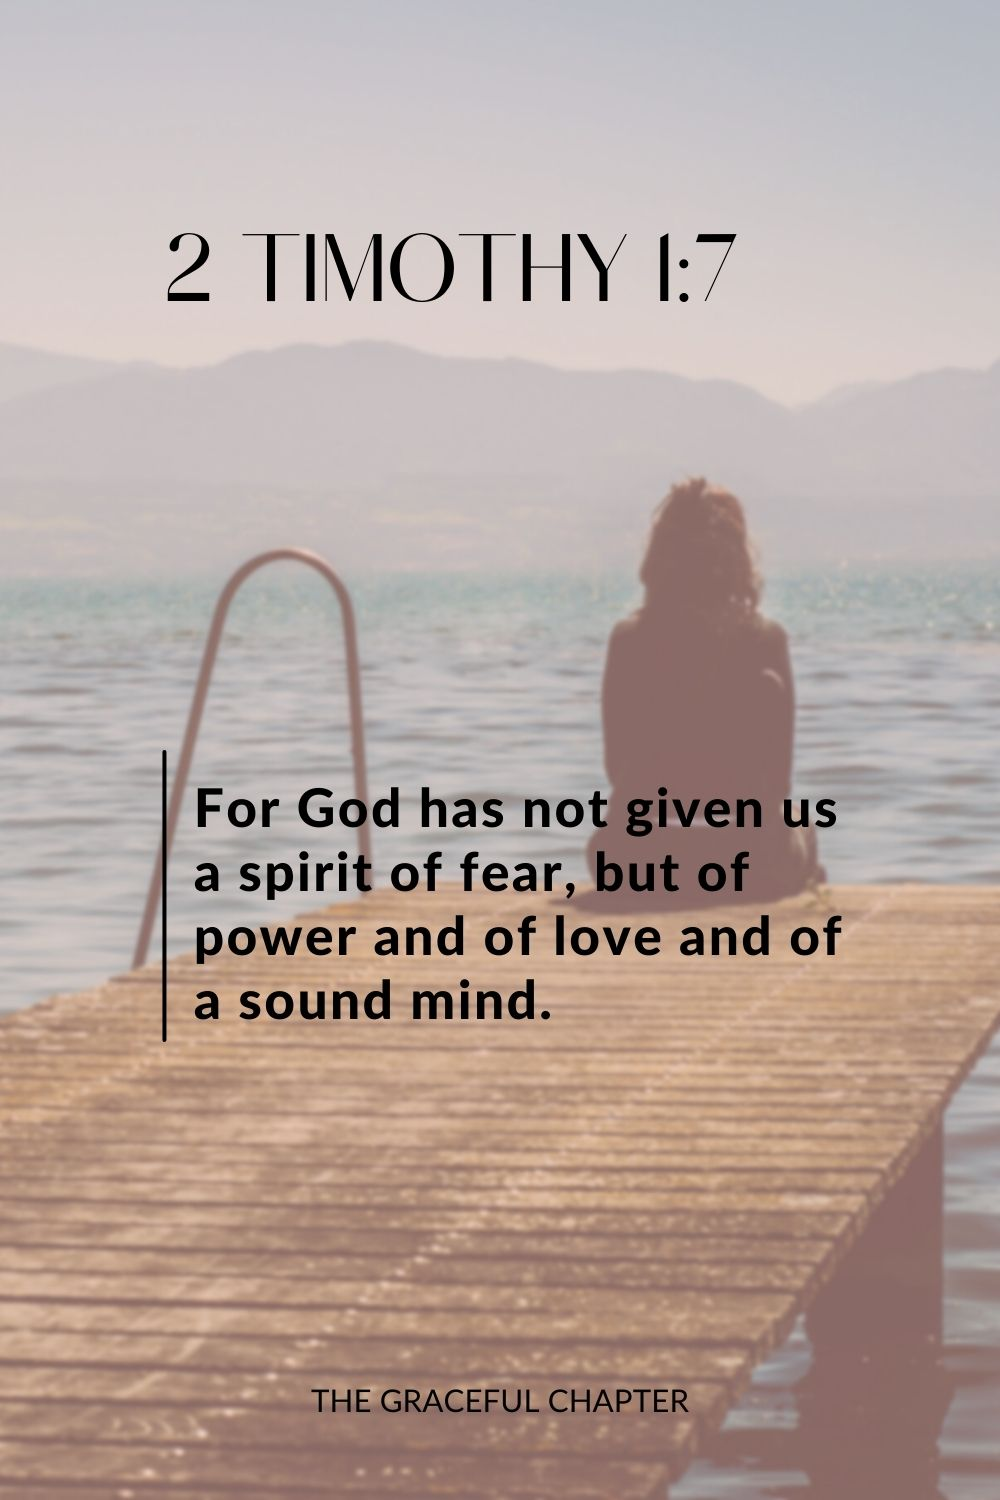 For God has not given us a spirit of fear, but of power and of love and of a sound mind. 2 Timothy 1:7